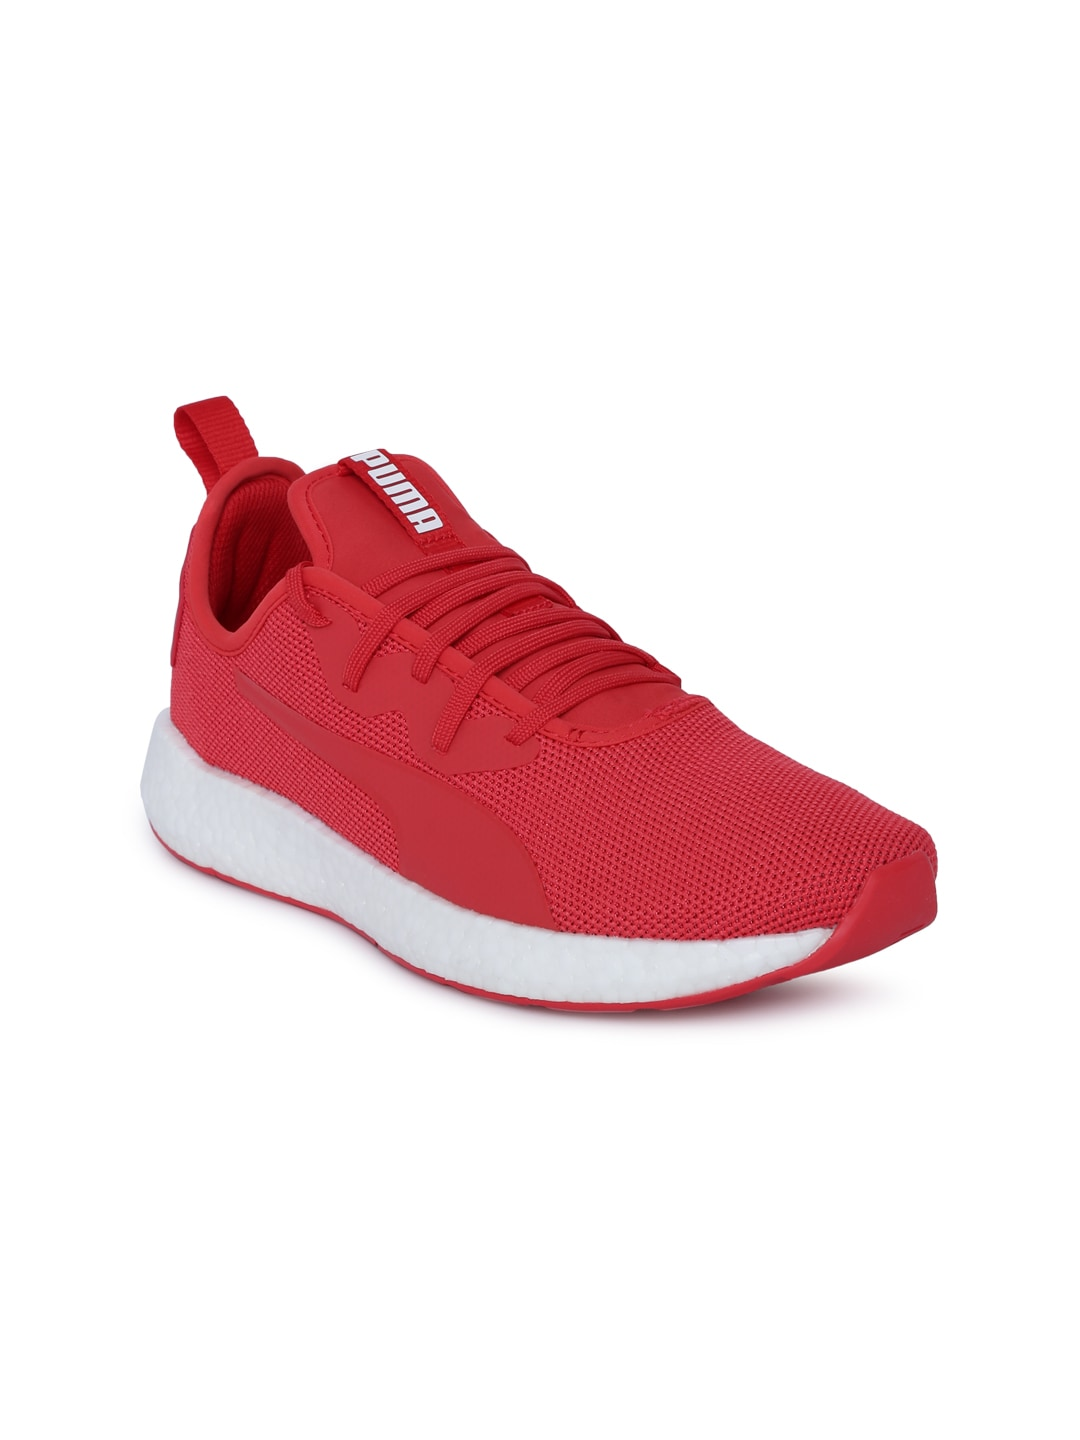 c8afc1cdbadf32 Puma Red Shoes - Buy Puma Red Shoes Online in India